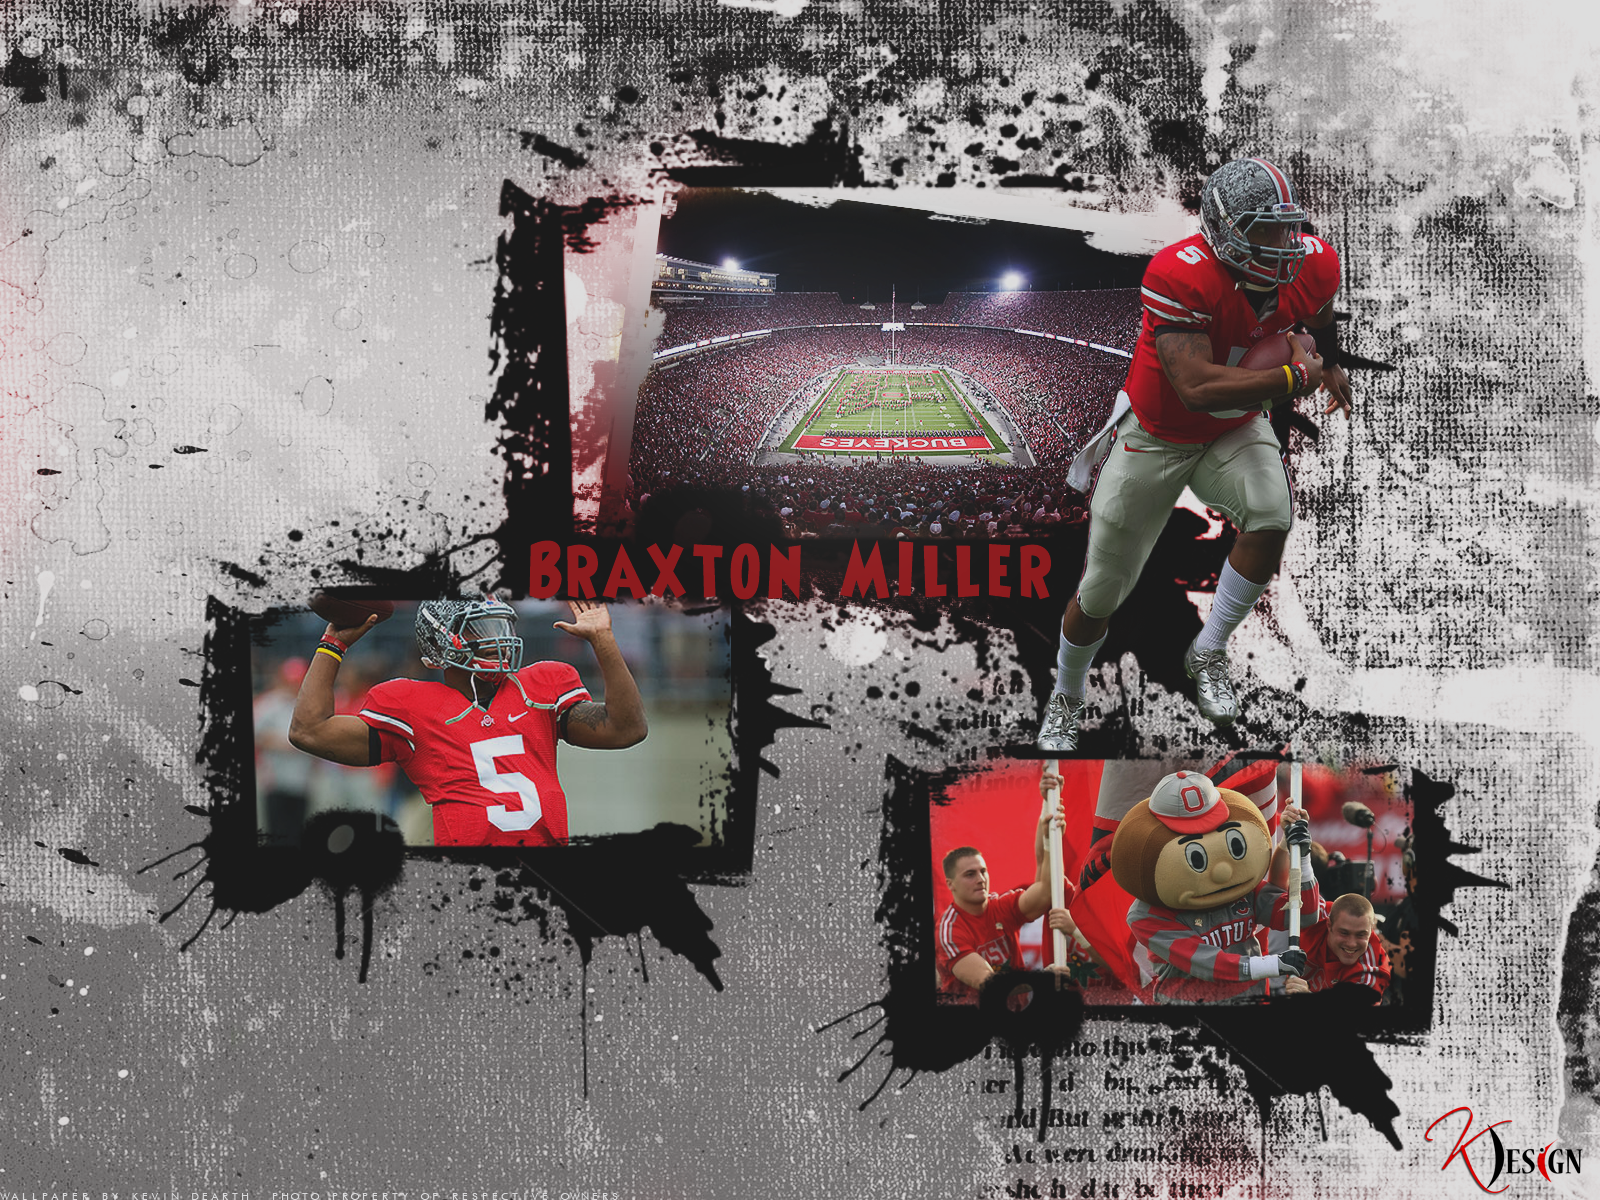 Braxton Miller Wallpaper by KevinsGraphics